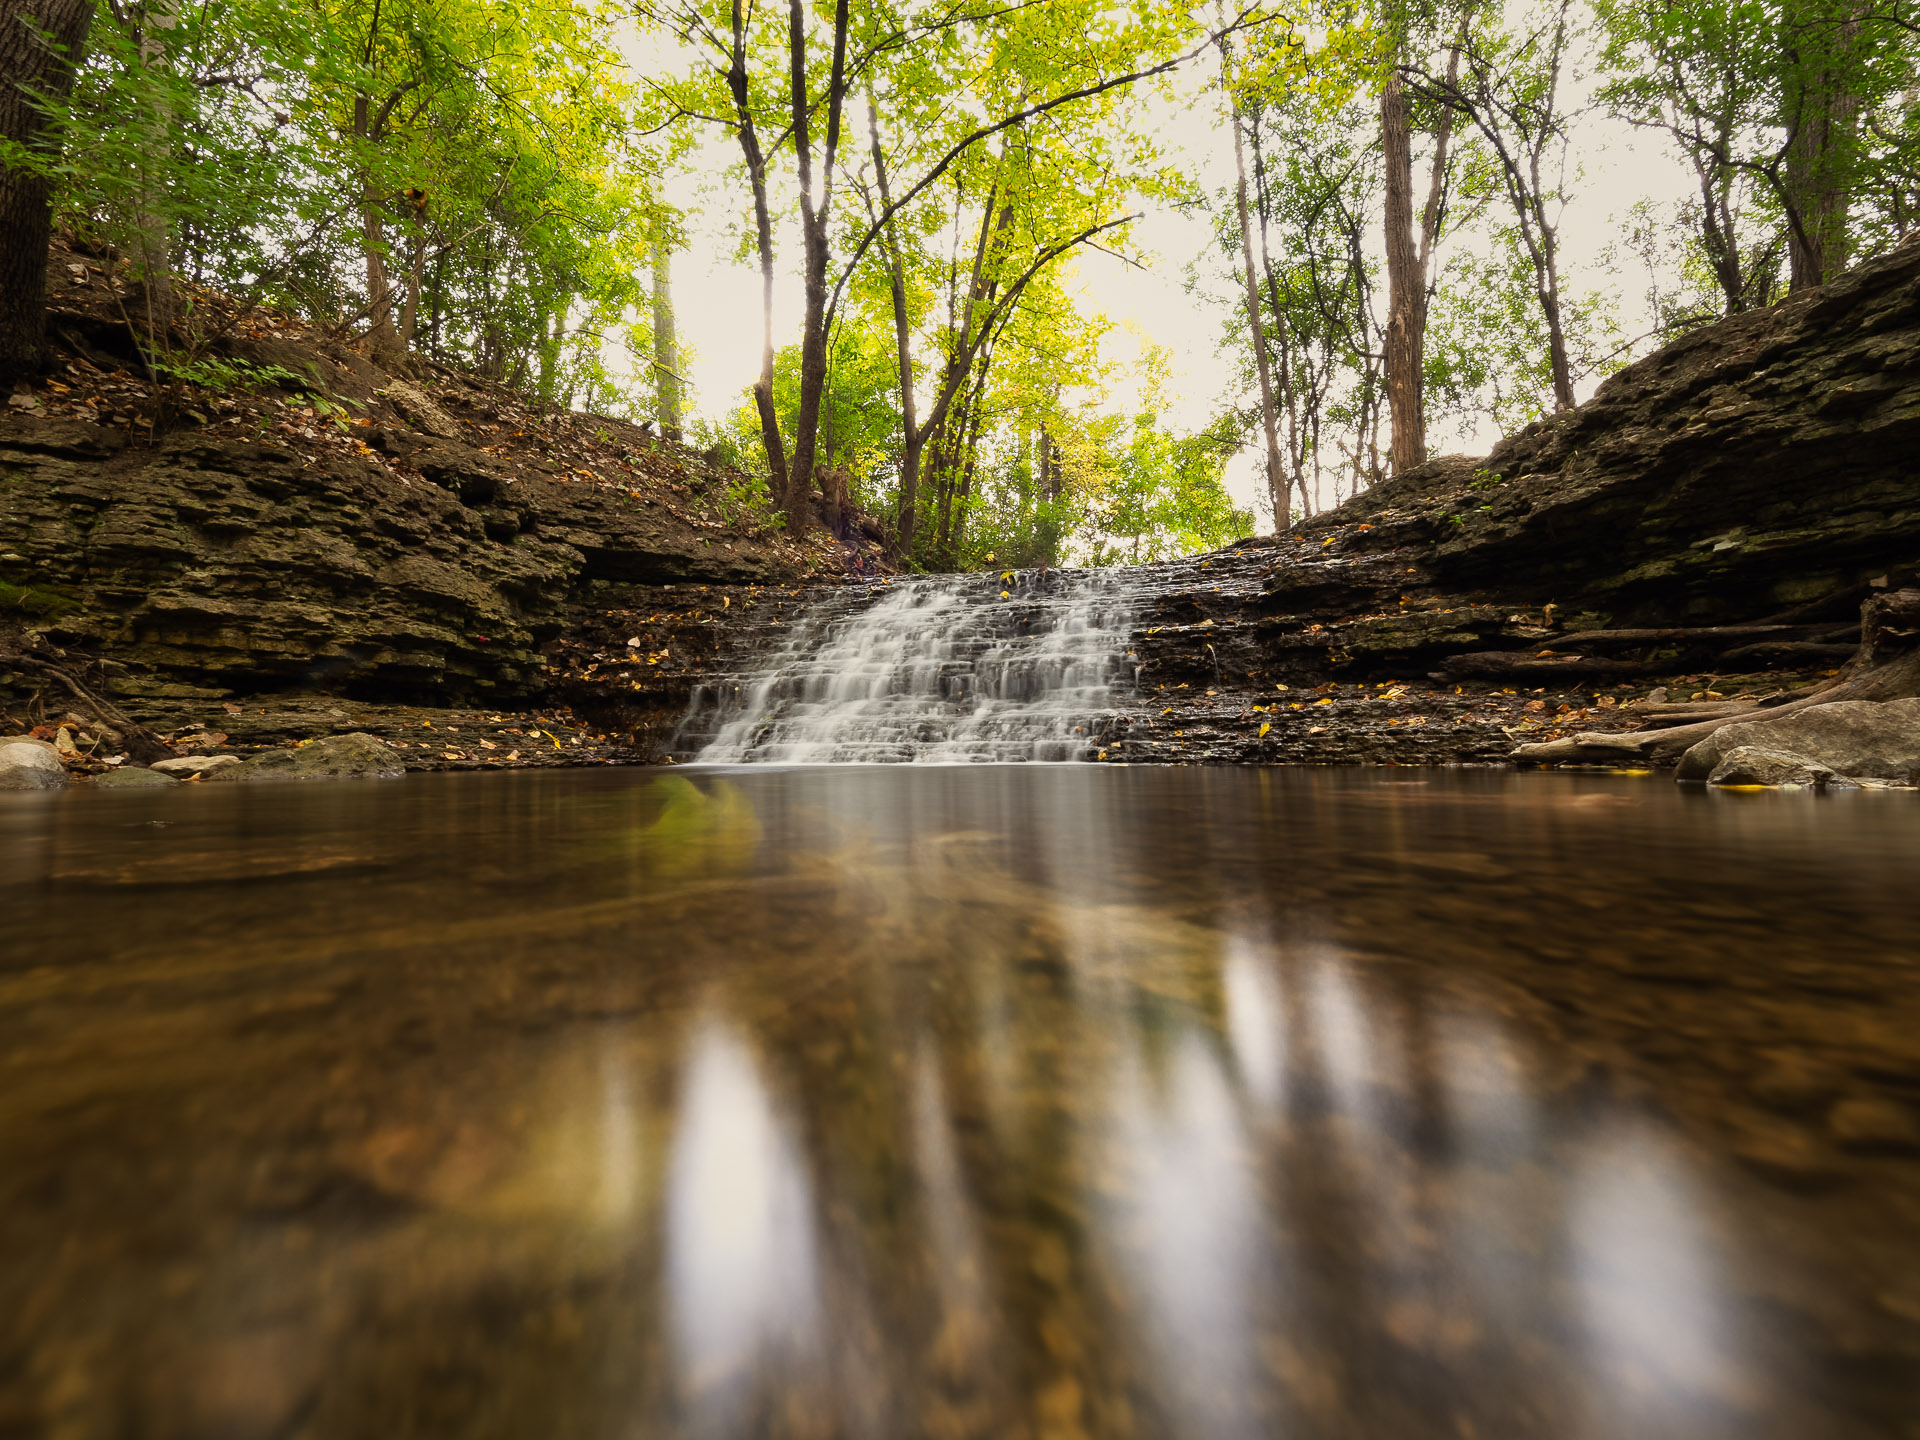 waterfall at Jon Duerr forest preserve